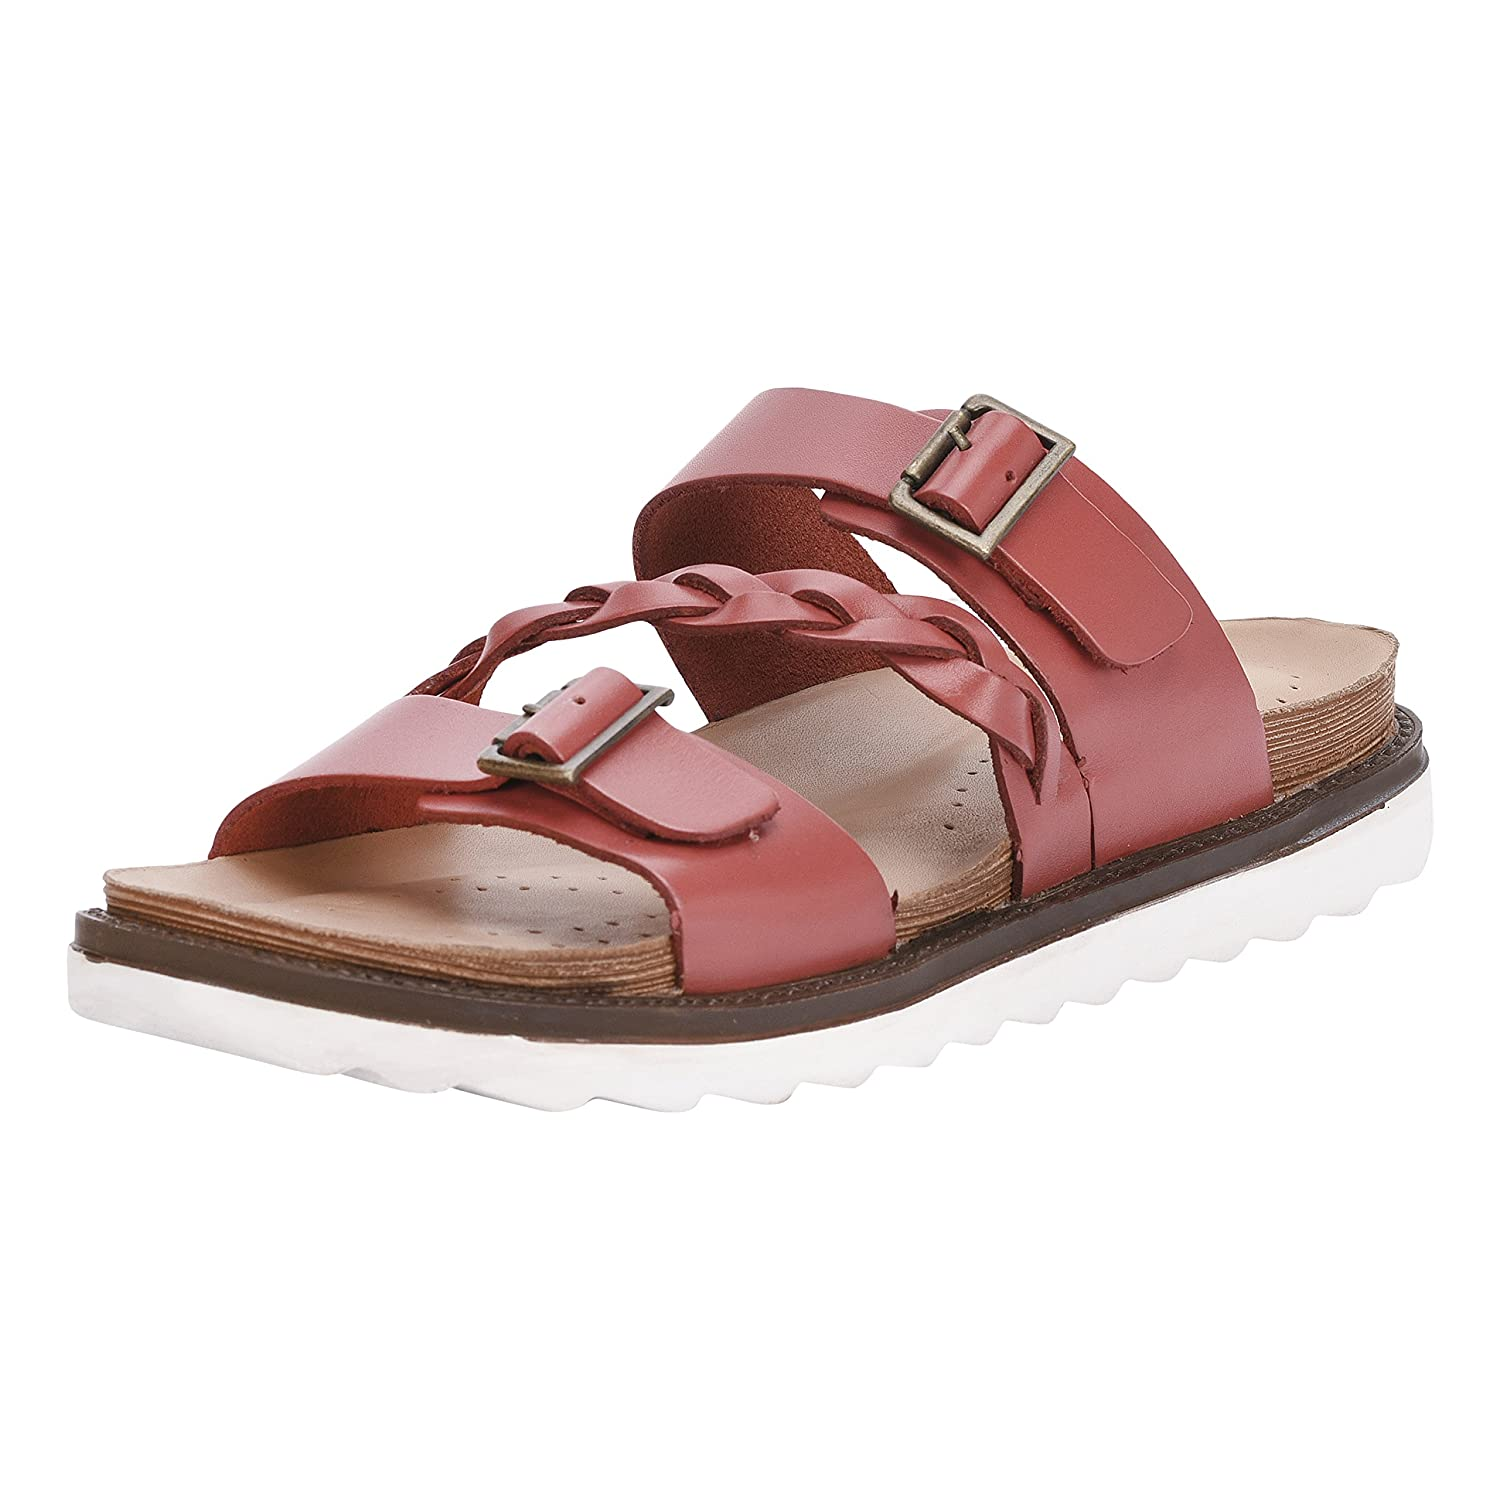 Liberty Women's Leather Slide On Sandals Double Strap Buckle Braided Platforms B07BWN6Q9Z 10 M US|Red Garnet